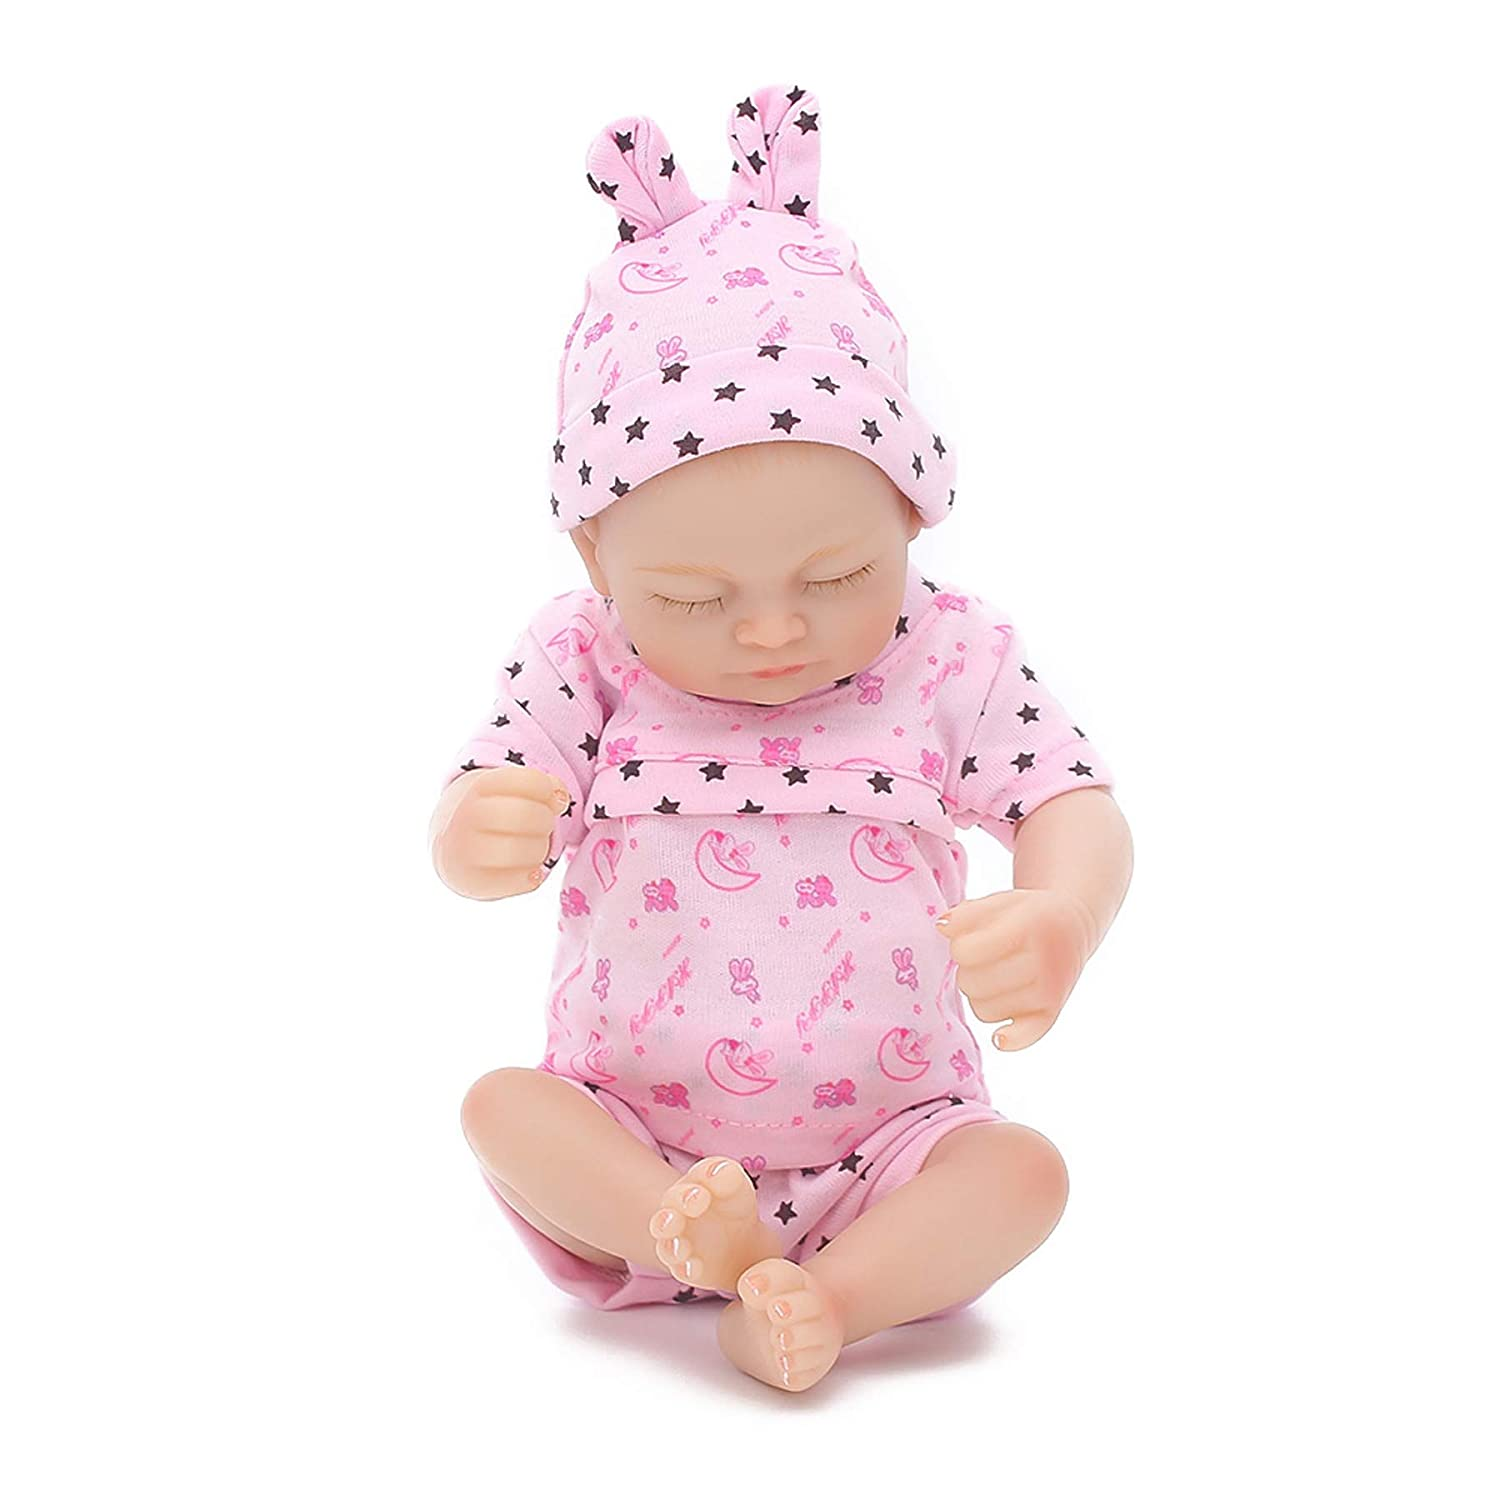 Wamdoll Rare Alive Reborn Baby Dolls,Sweet Dreams Palm Girl,10 inch Vinyl-Like Silicone Full Body Otard